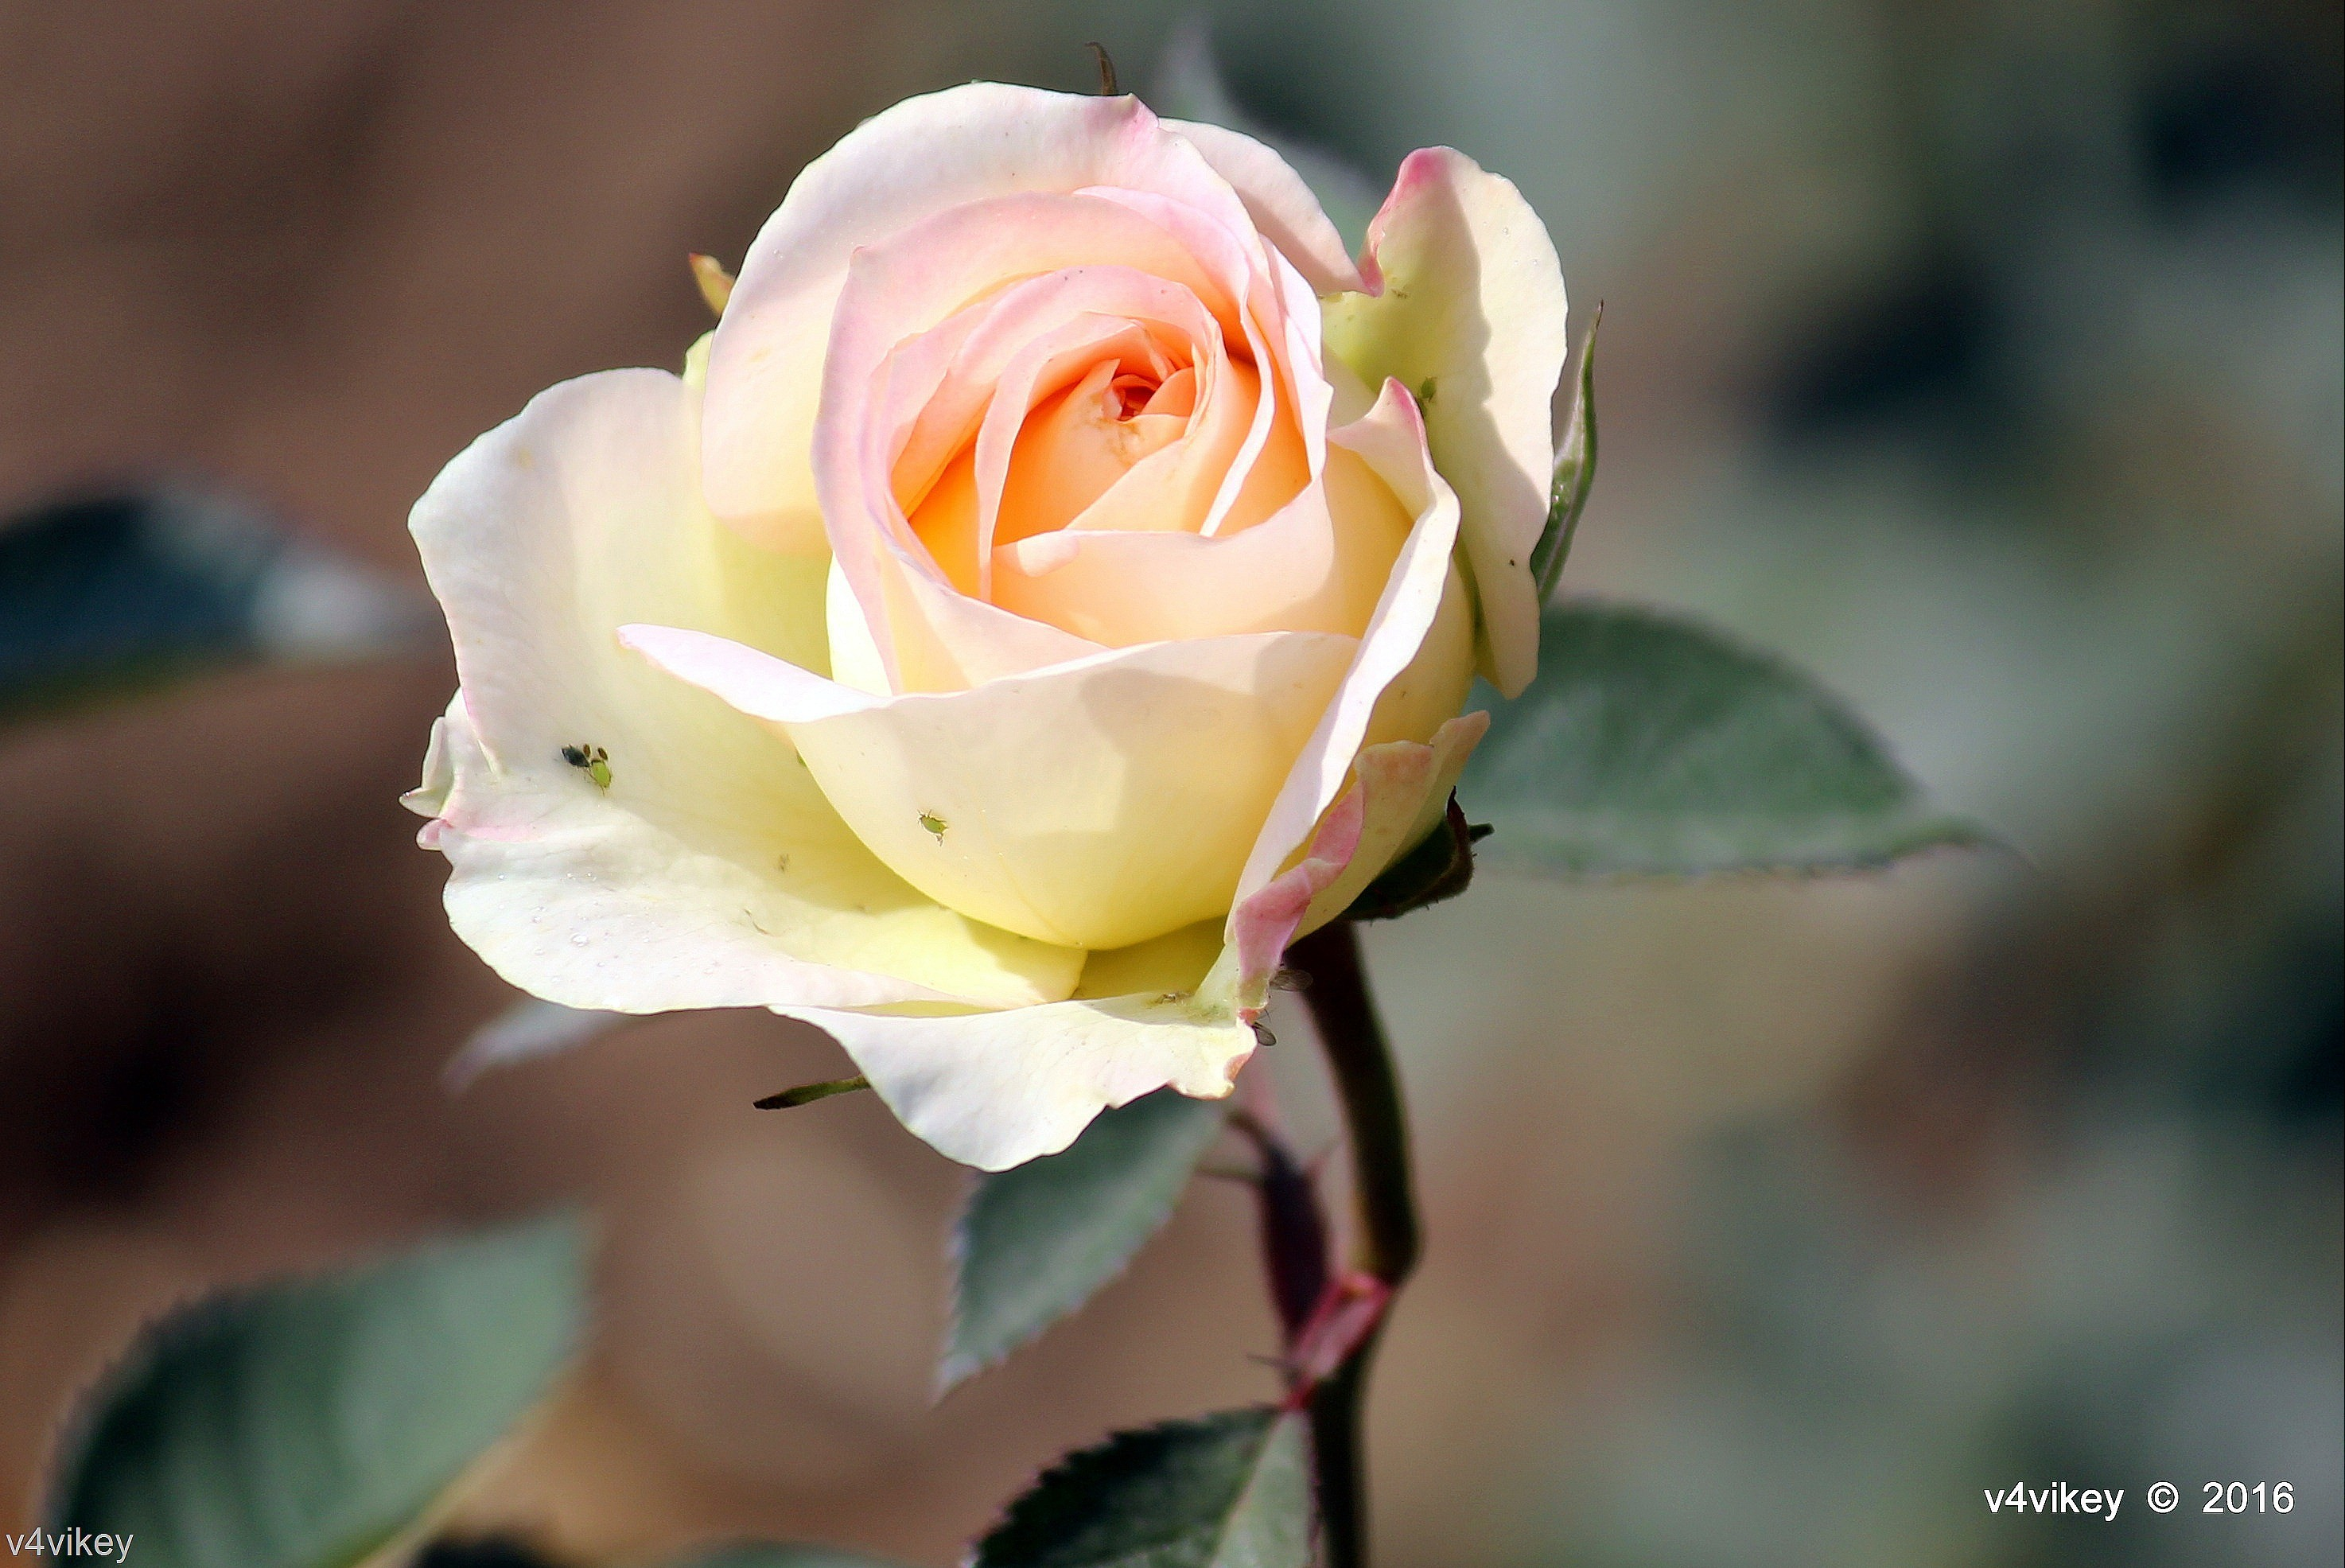 Res: 2948x1971, Wallpaper of Cream Color Roses